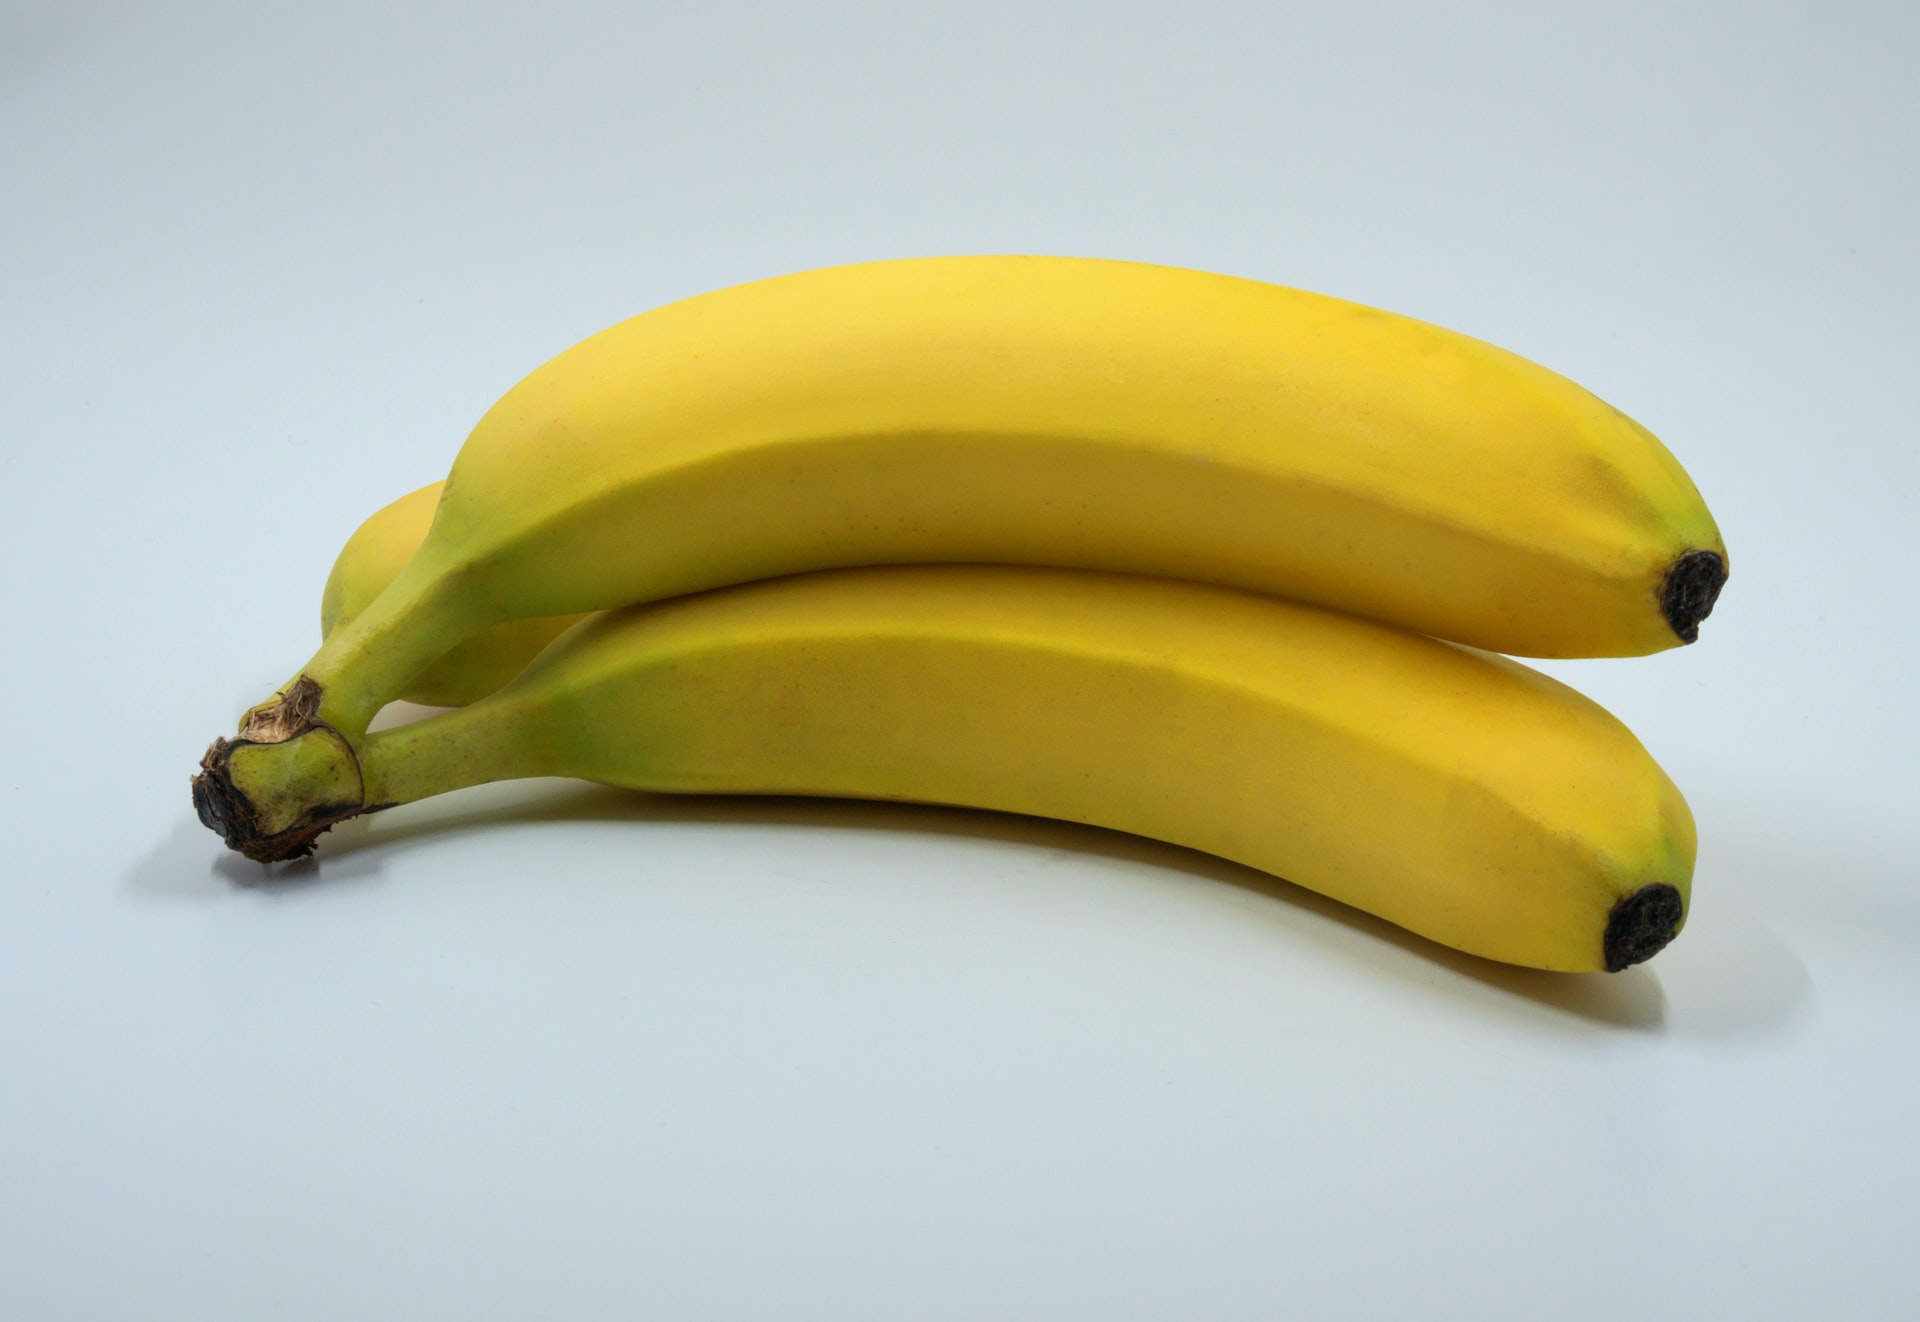 Fruits of the Loon: Banana